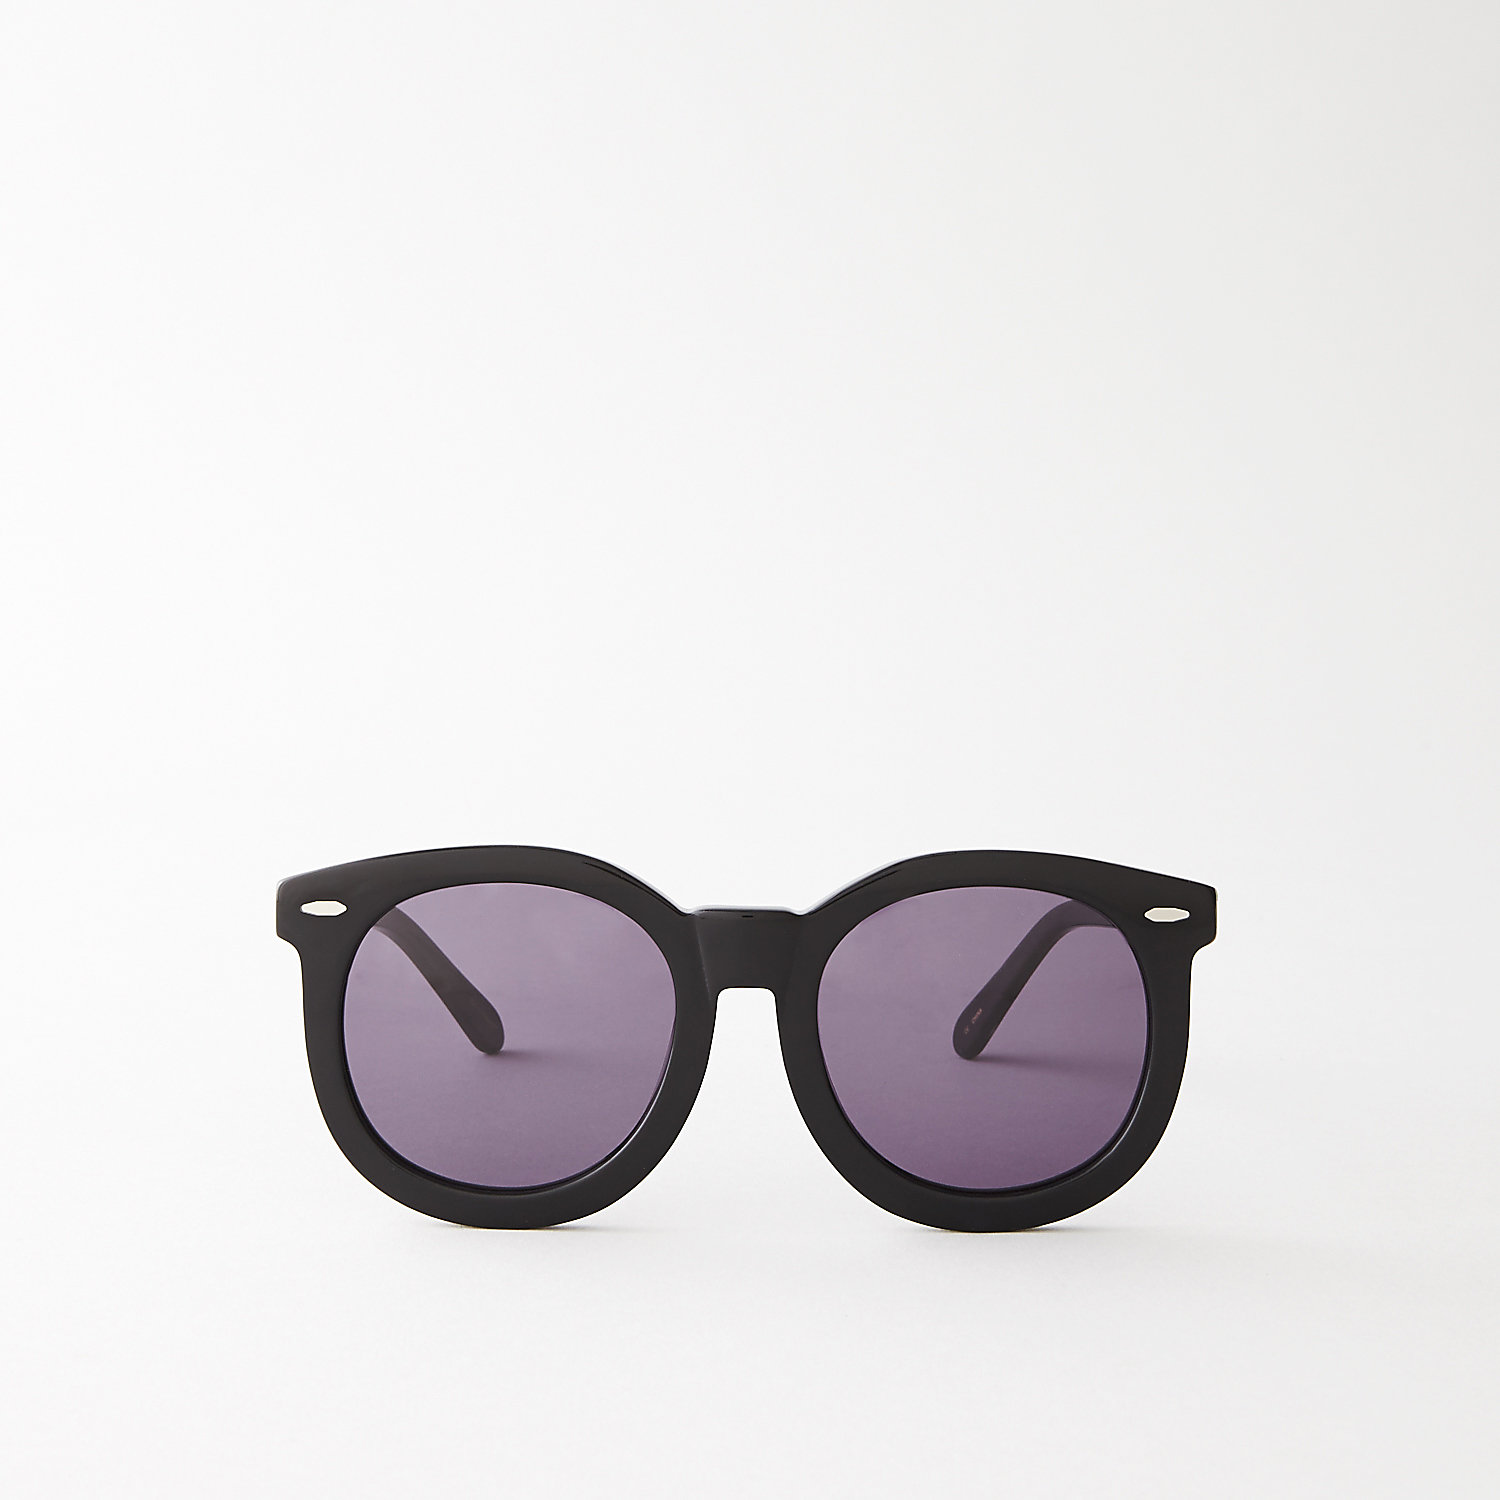 SUPER WORSHIP SUNGLASSES - BLACK